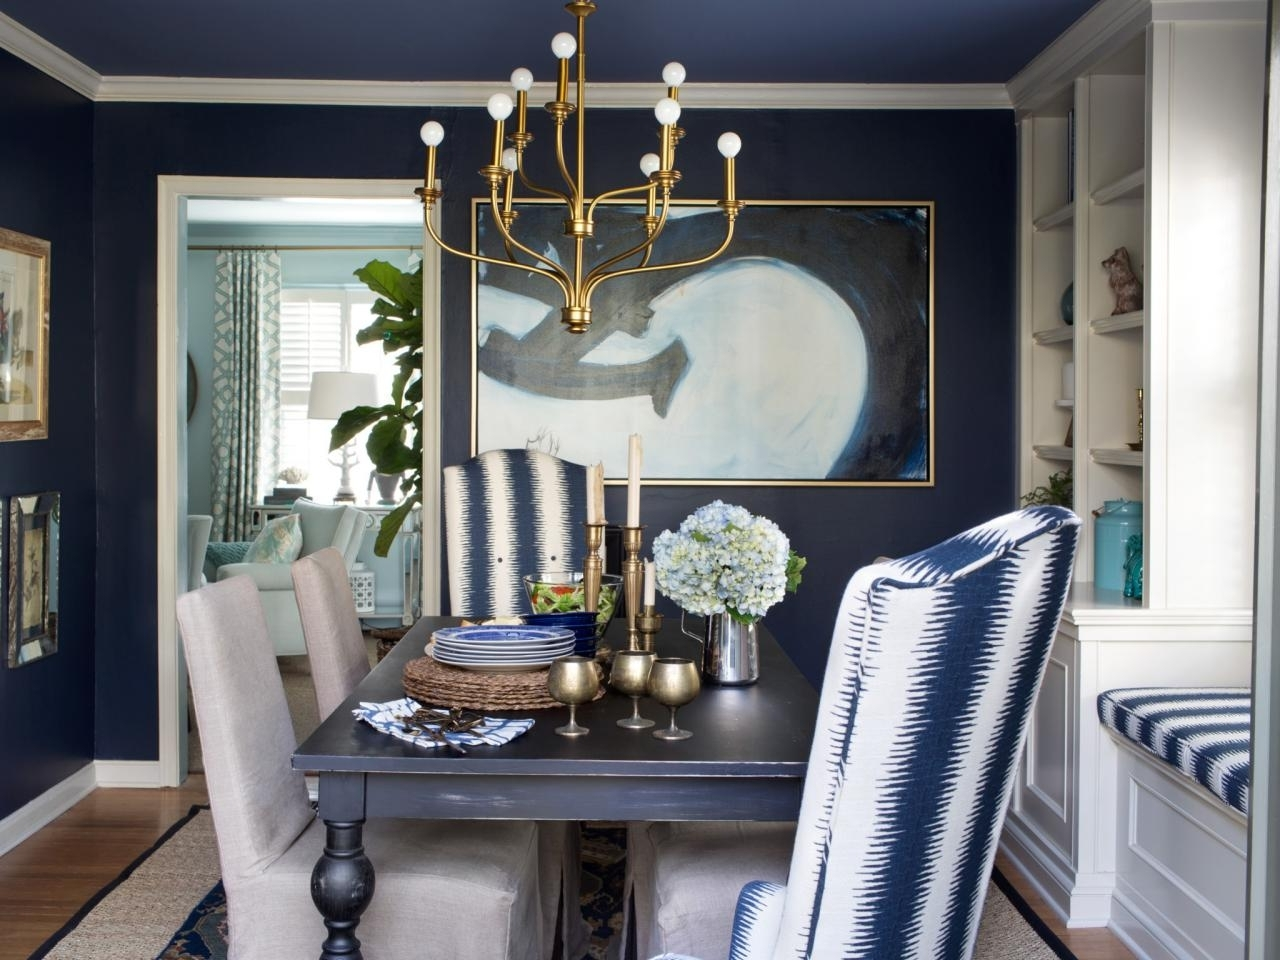 Hgtv's Decorating Inside Wall Accents For Blue Room (View 10 of 15)